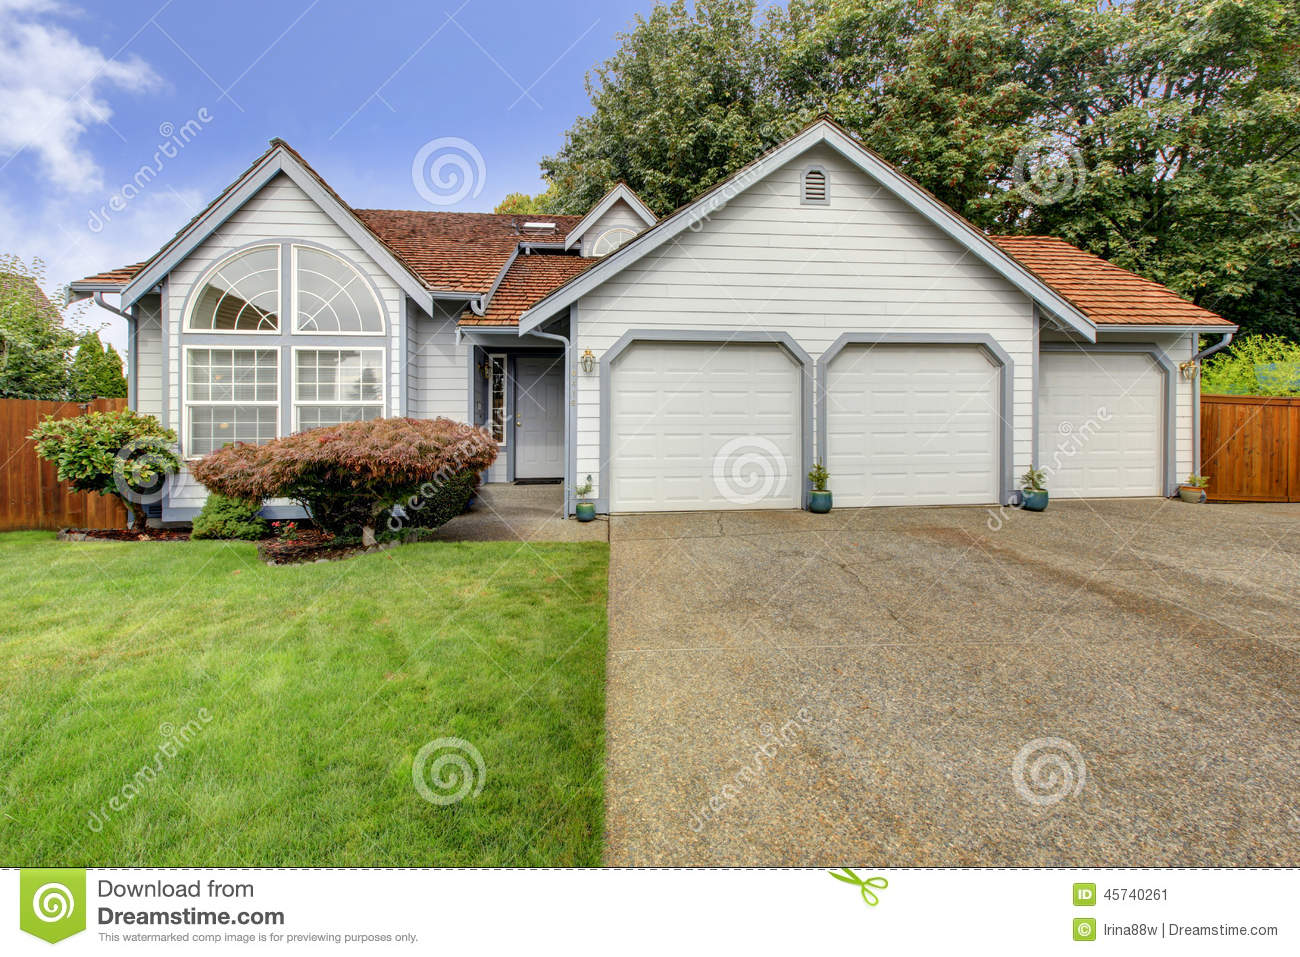 House with large arch window and three car garage stock for How big is a 2 car garage